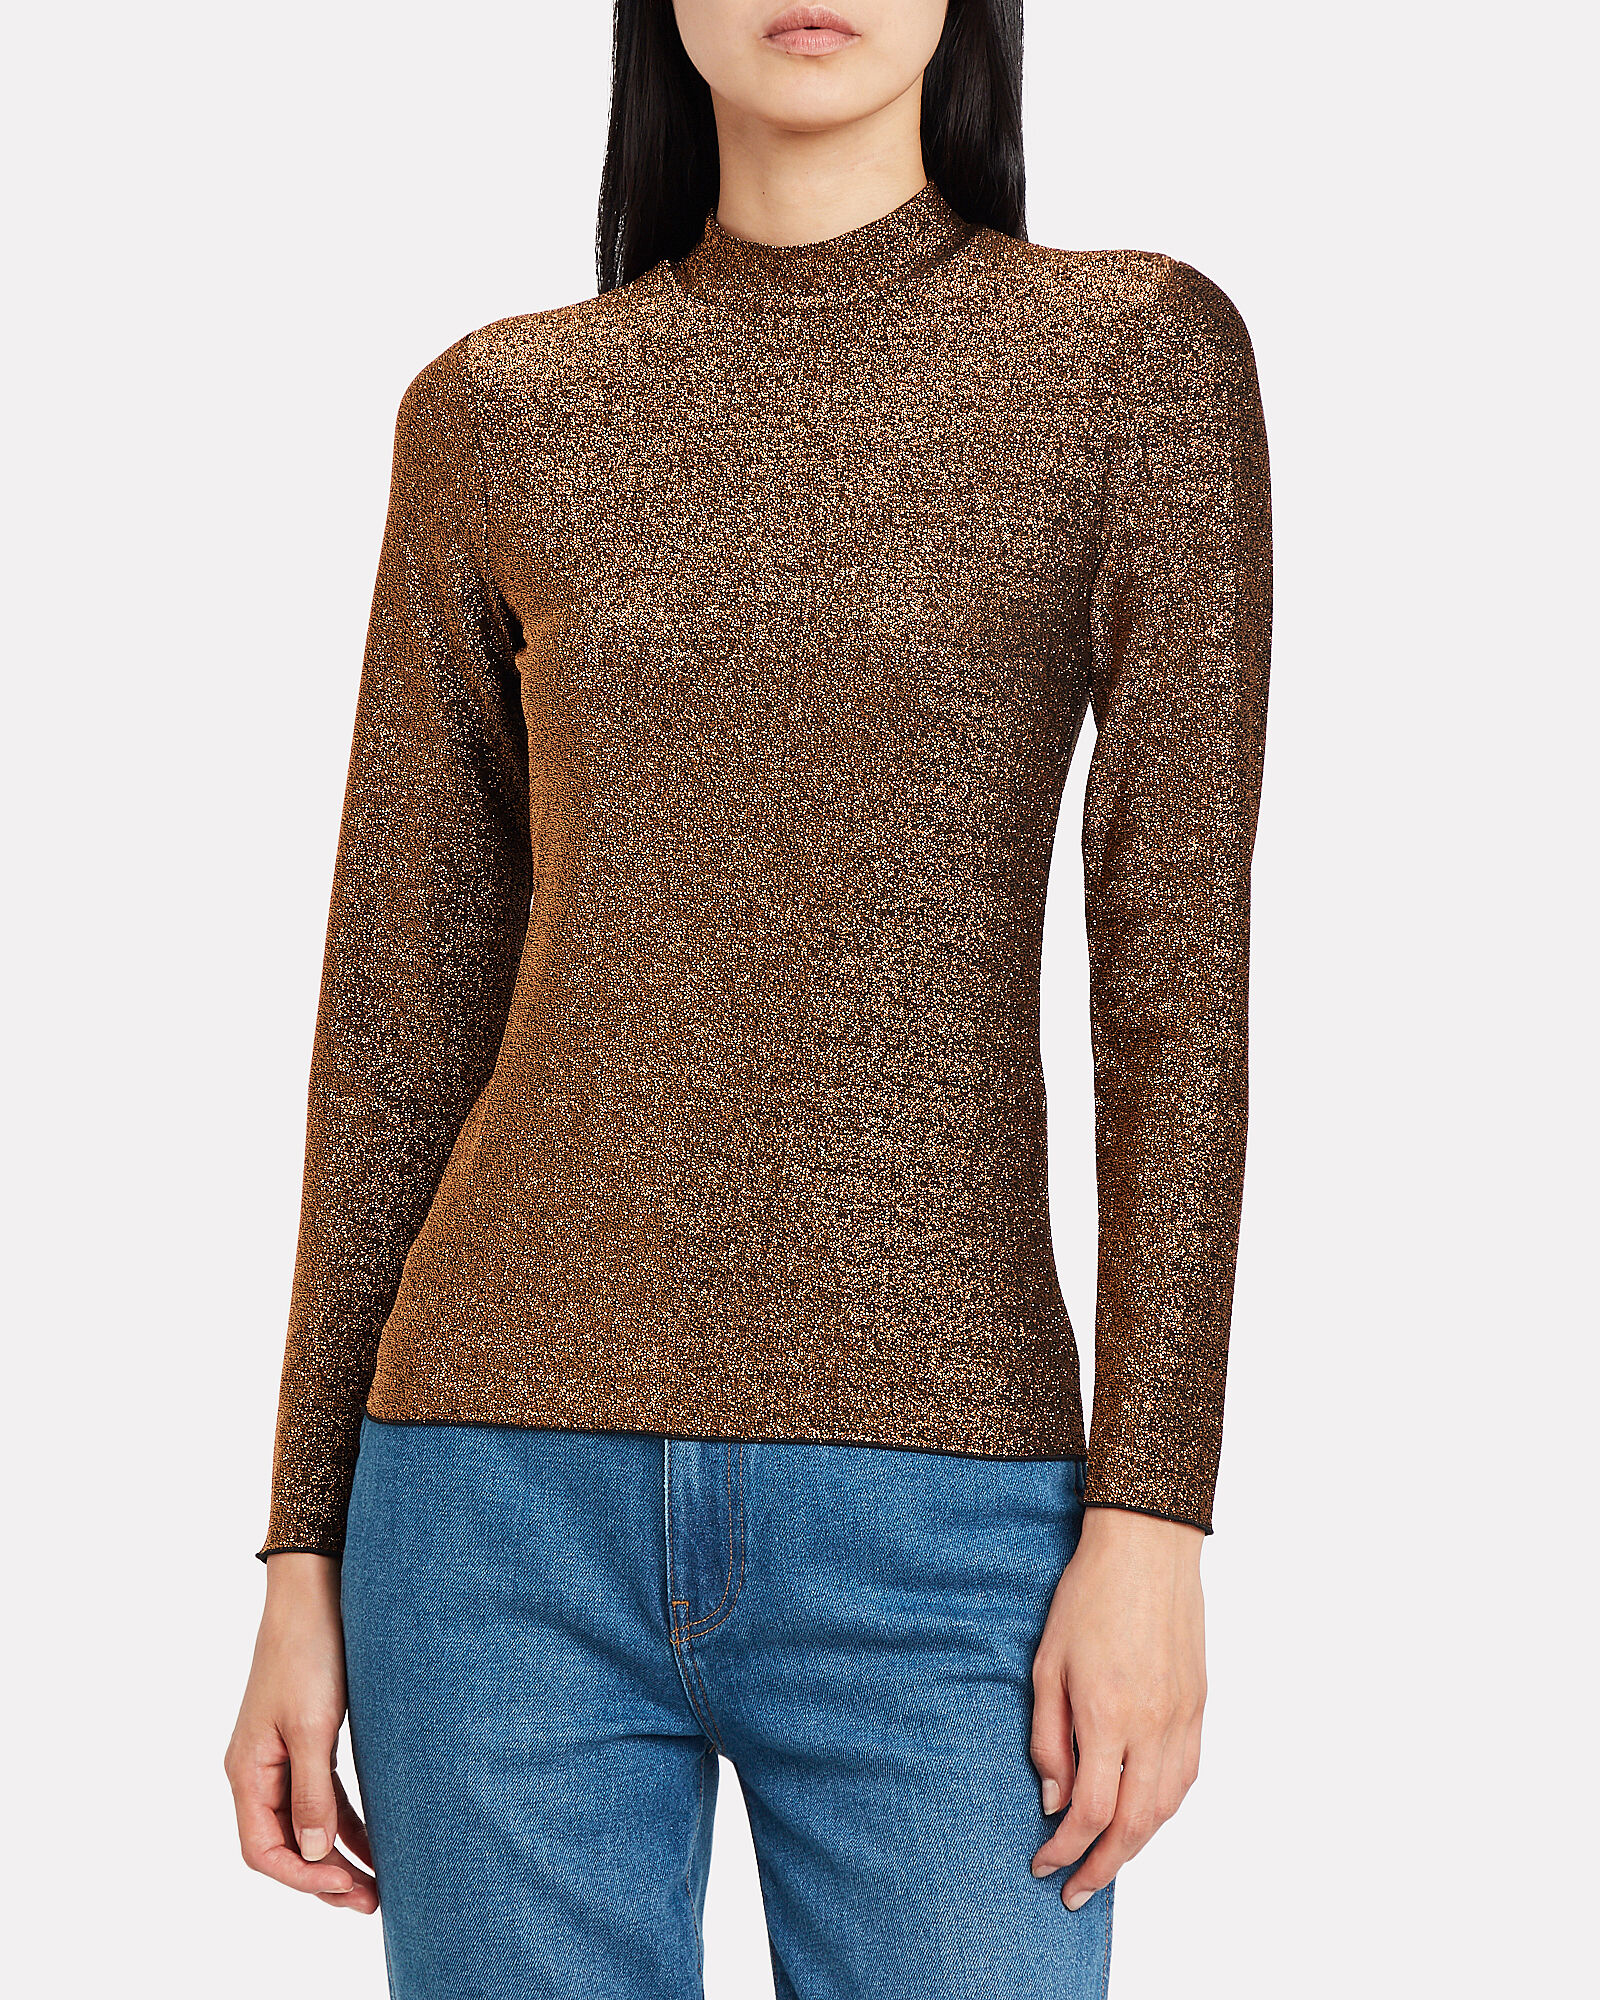 Jennie Lurex Turtleneck, BRONZE, hi-res